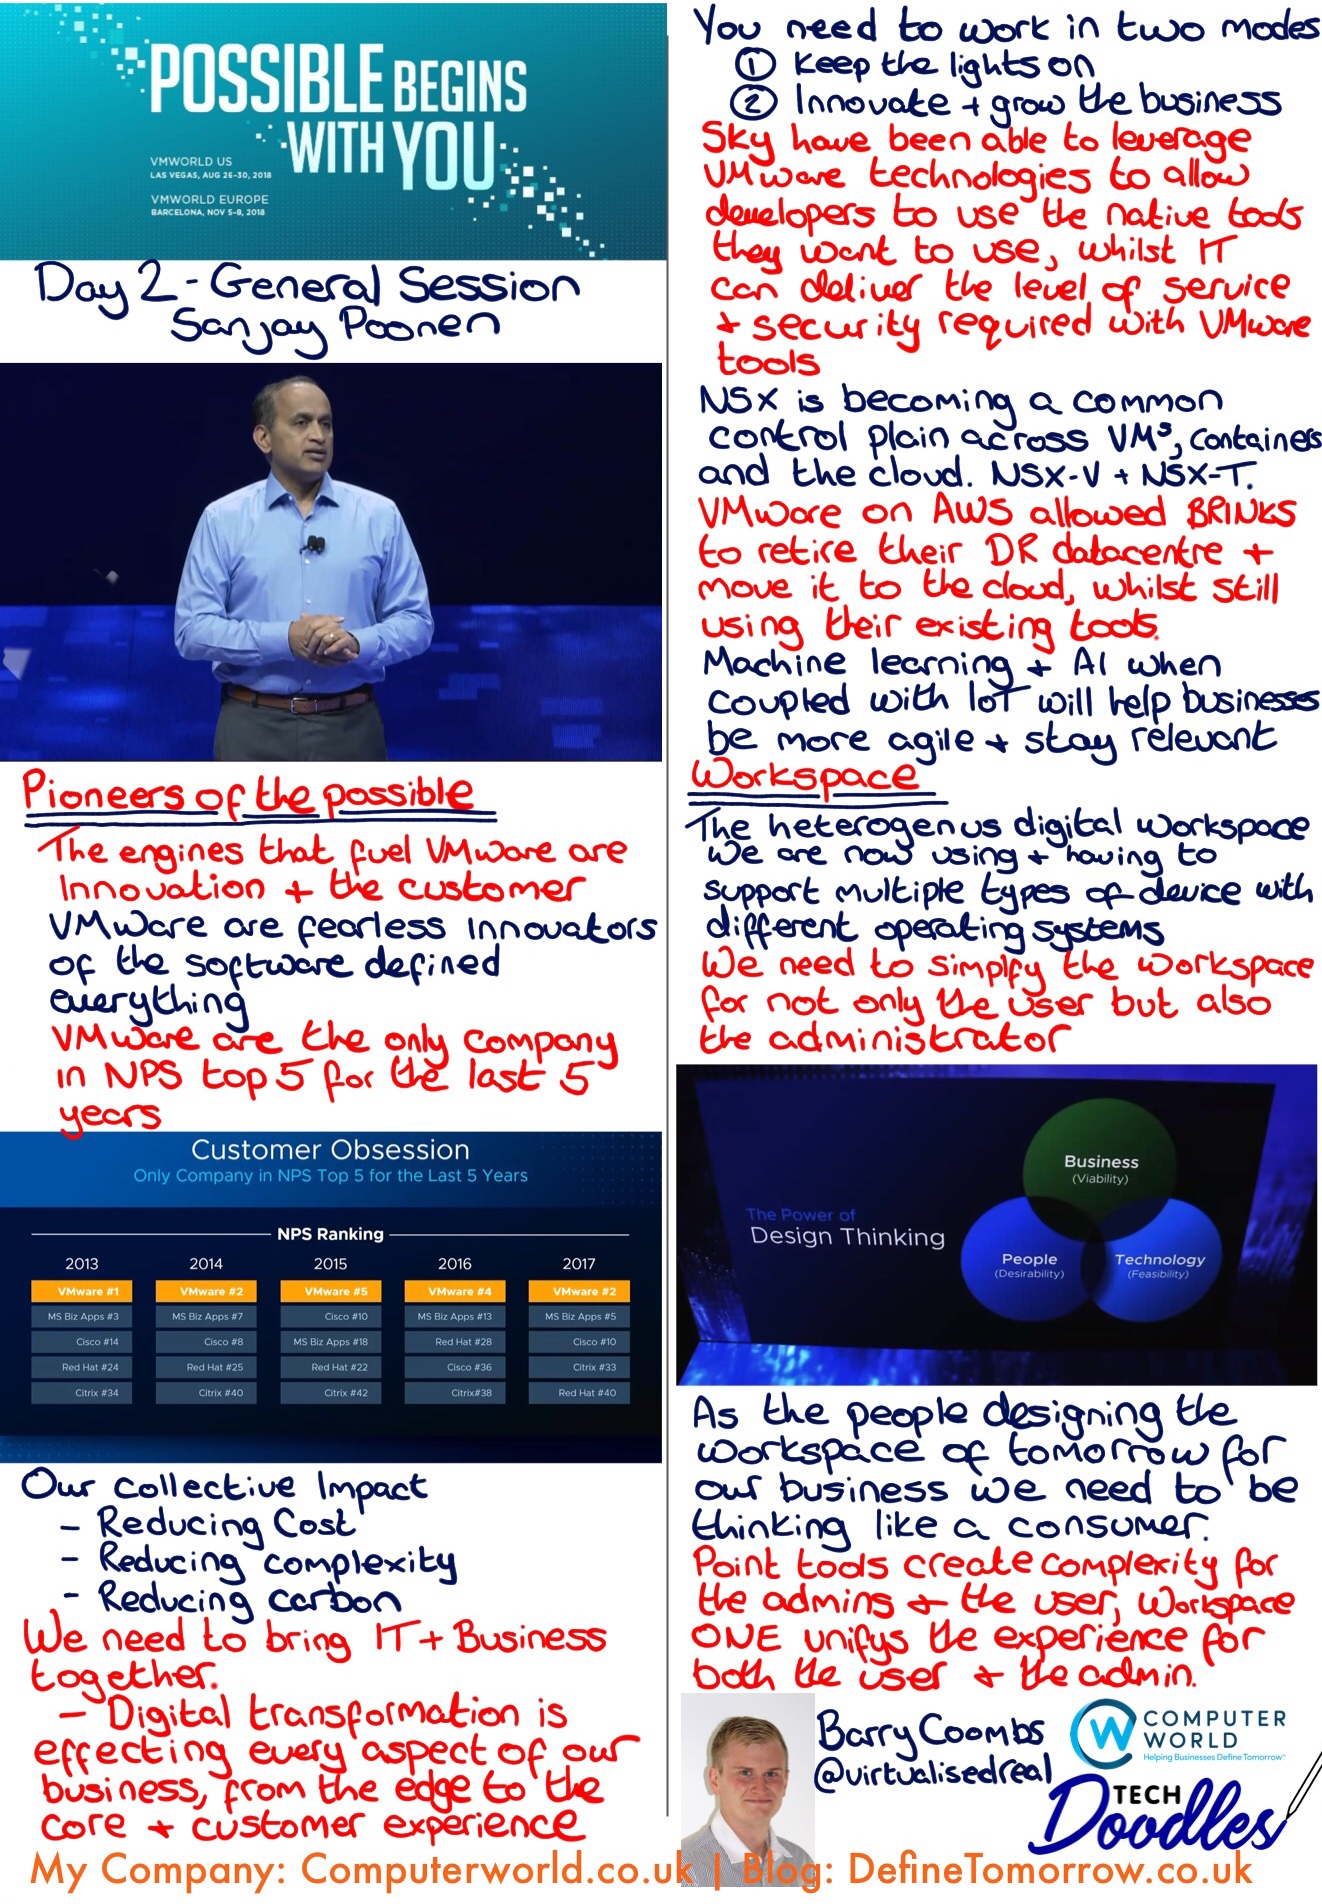 VMworld 2018 US Day 2 General Session.jpg